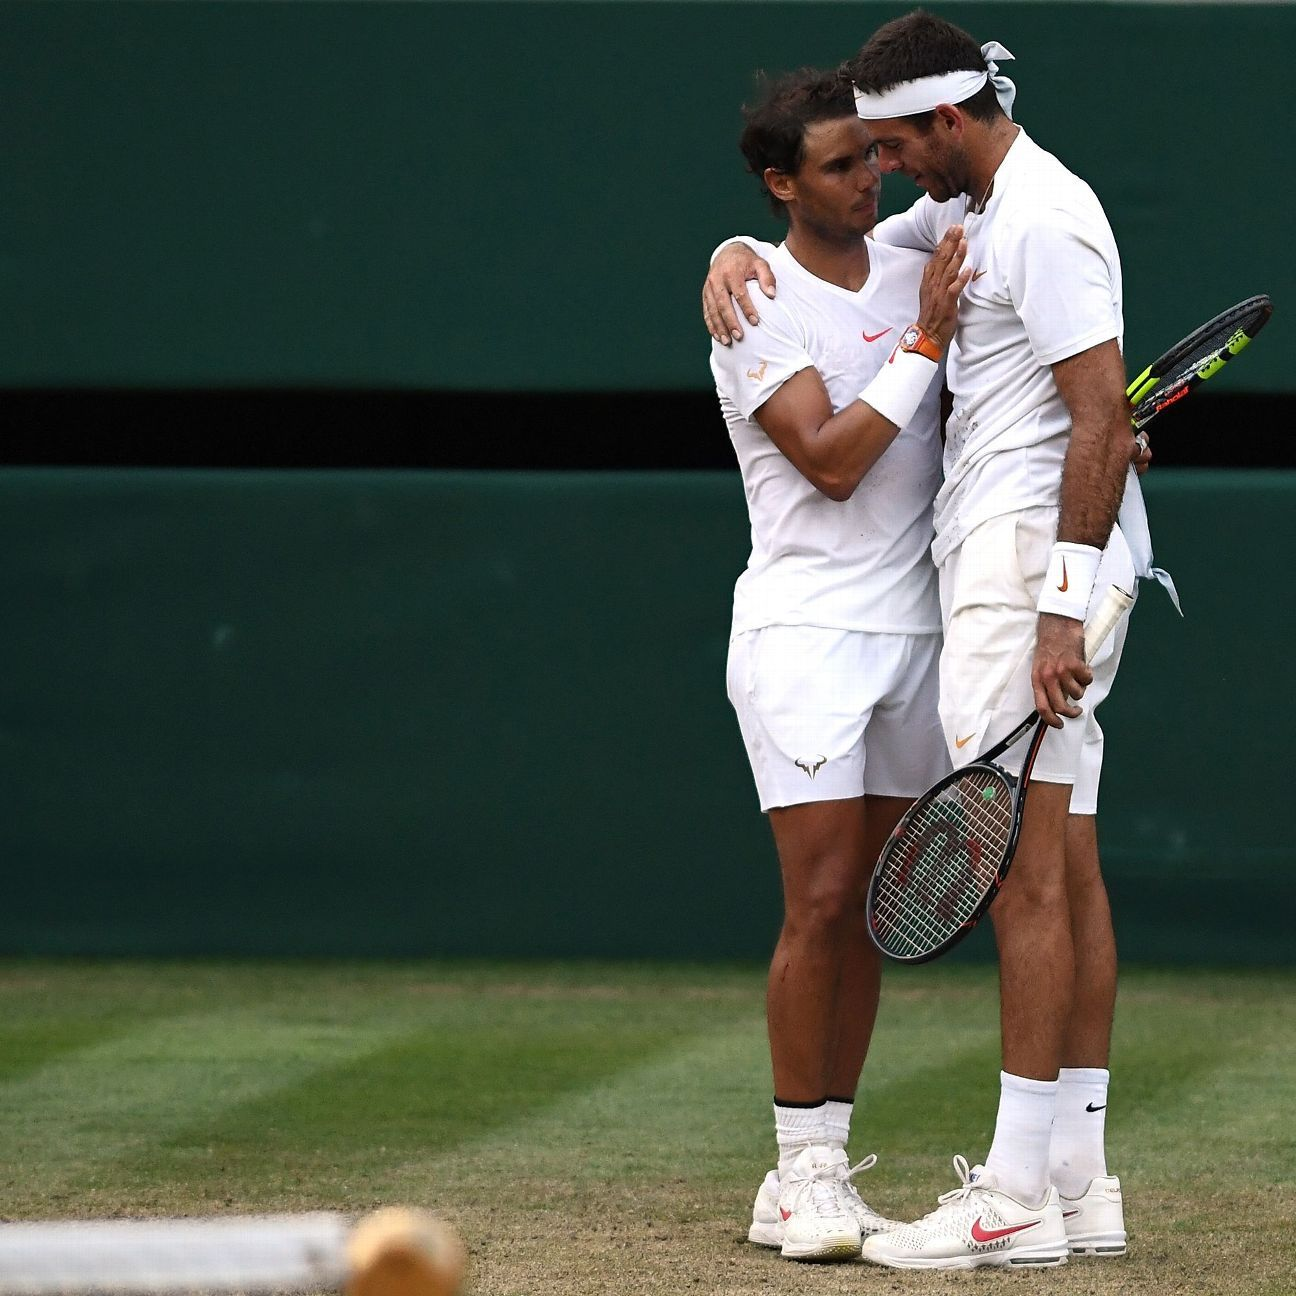 Isner-Anderson was a match you learned to love, then hate, then love all over again